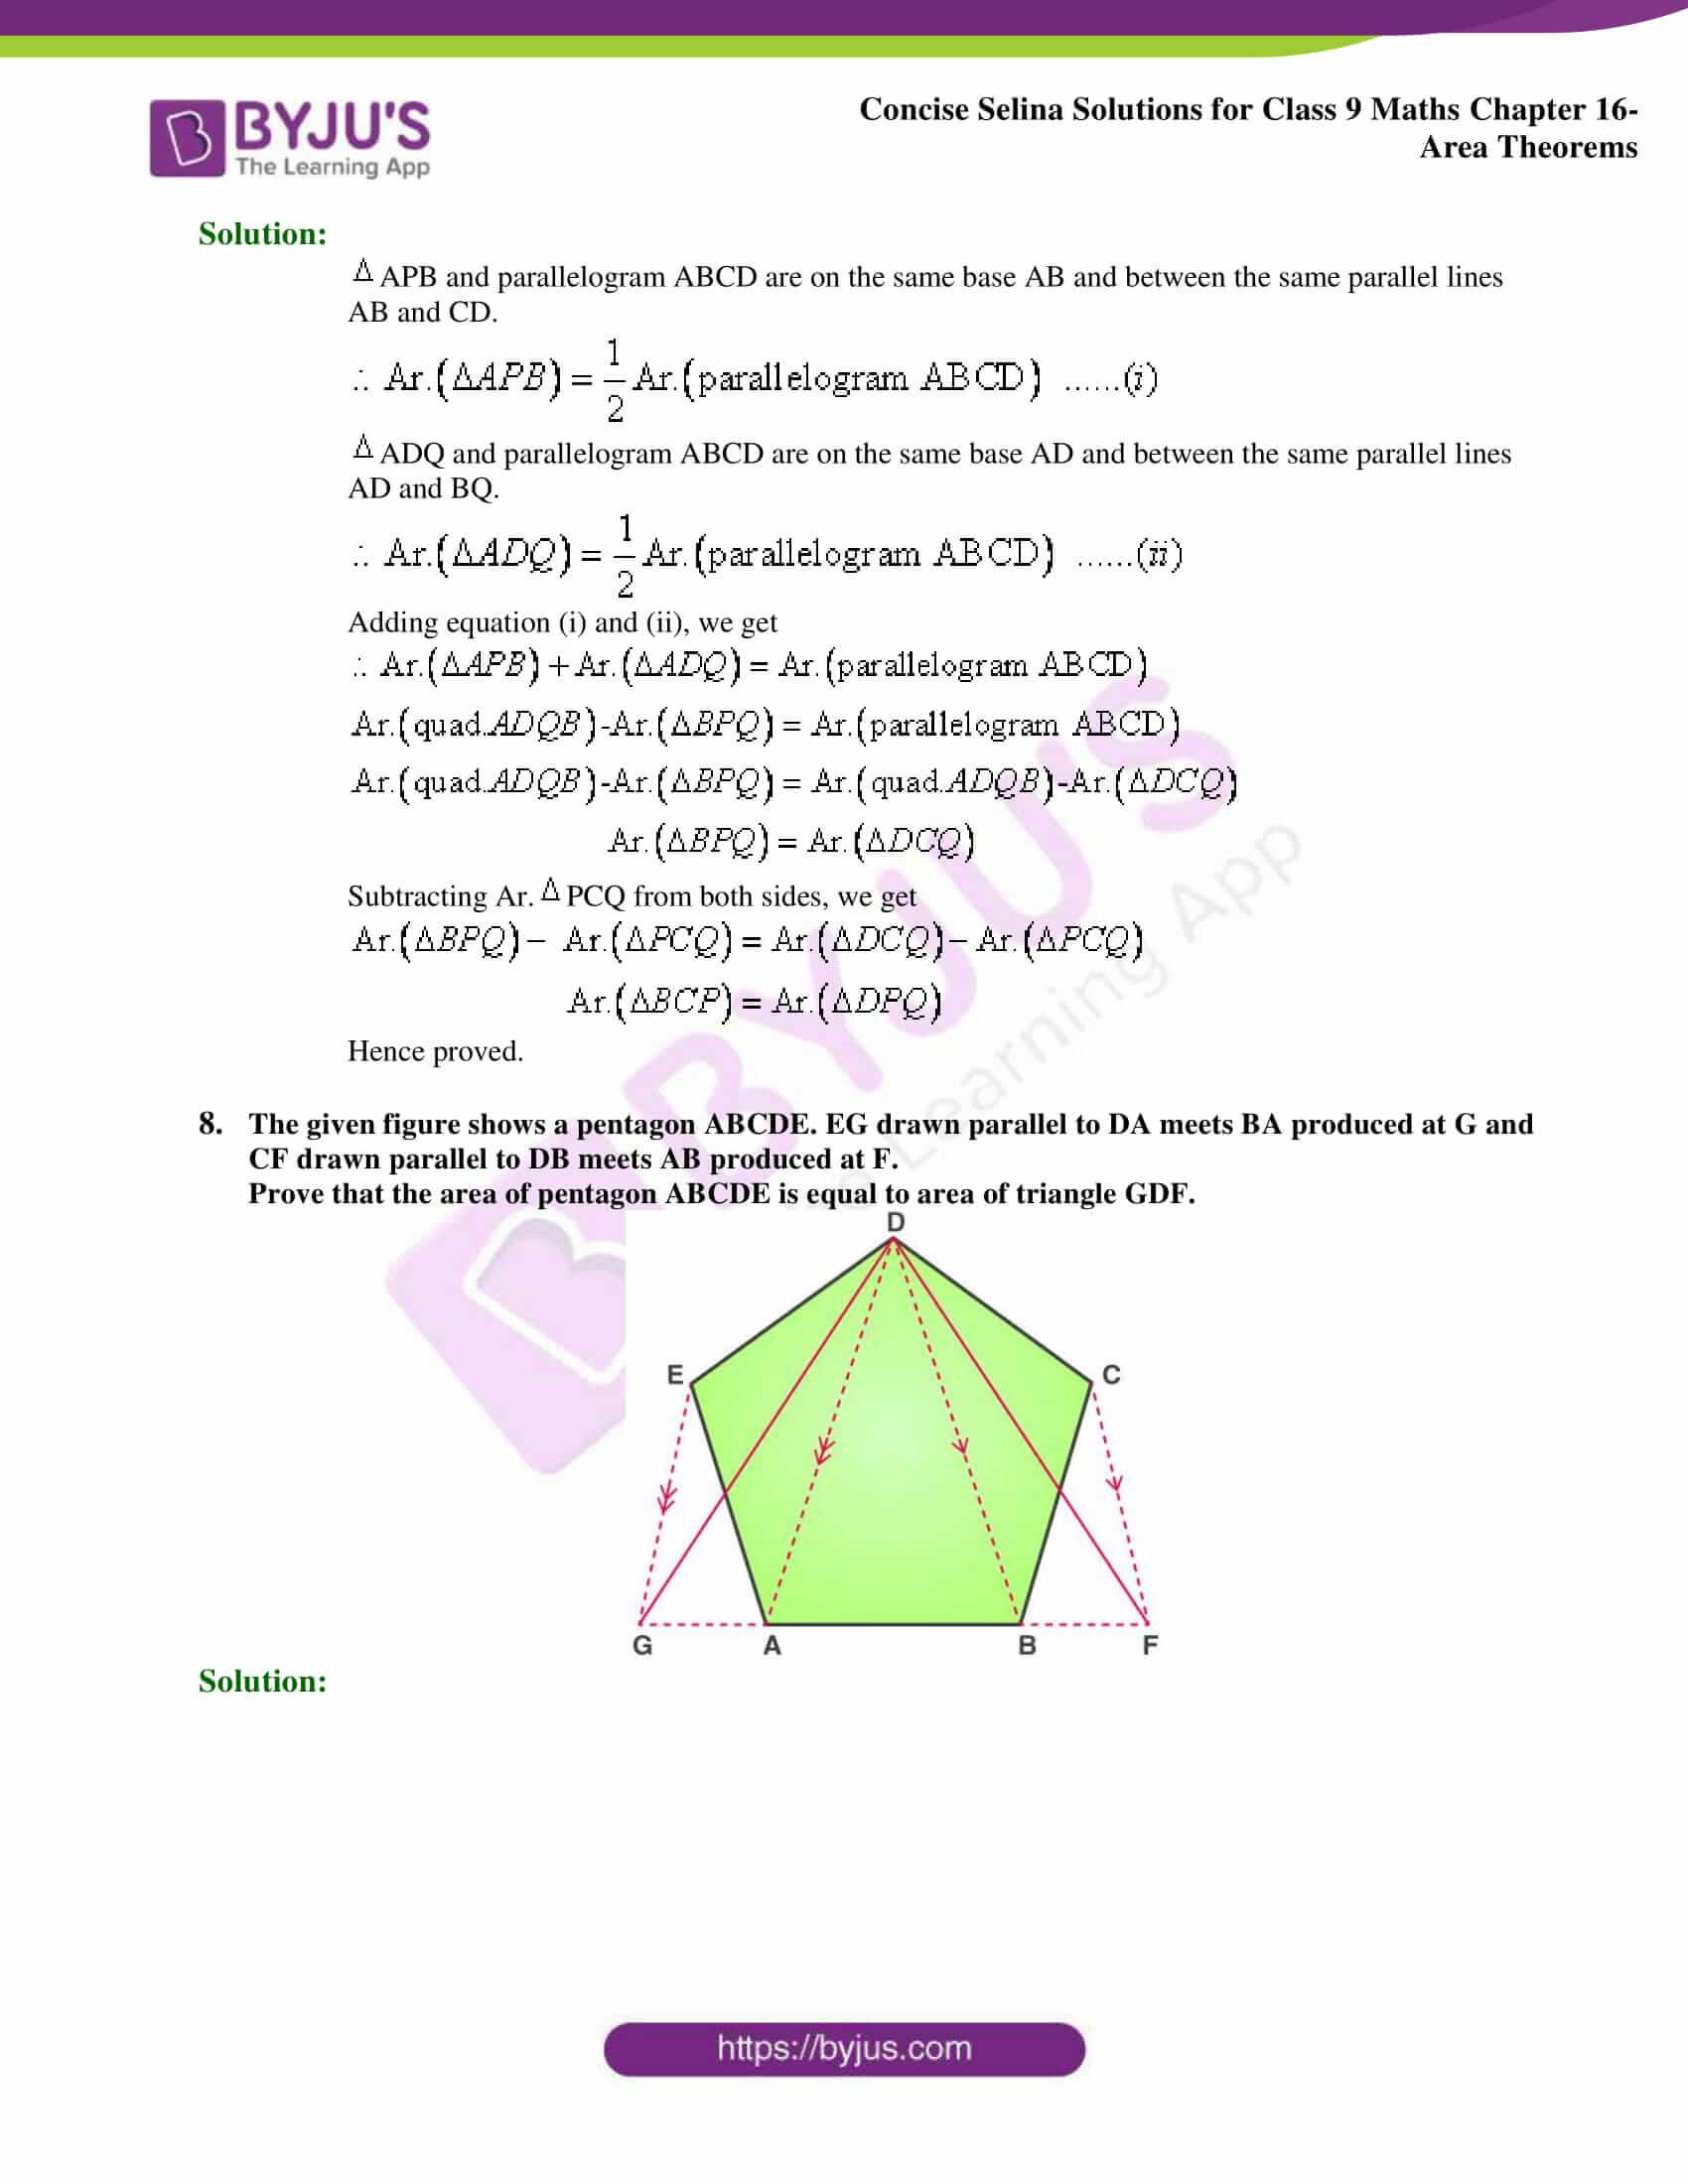 Concise Selina Solutions Class 9 Maths Chapter 16 Area Theorems part 06